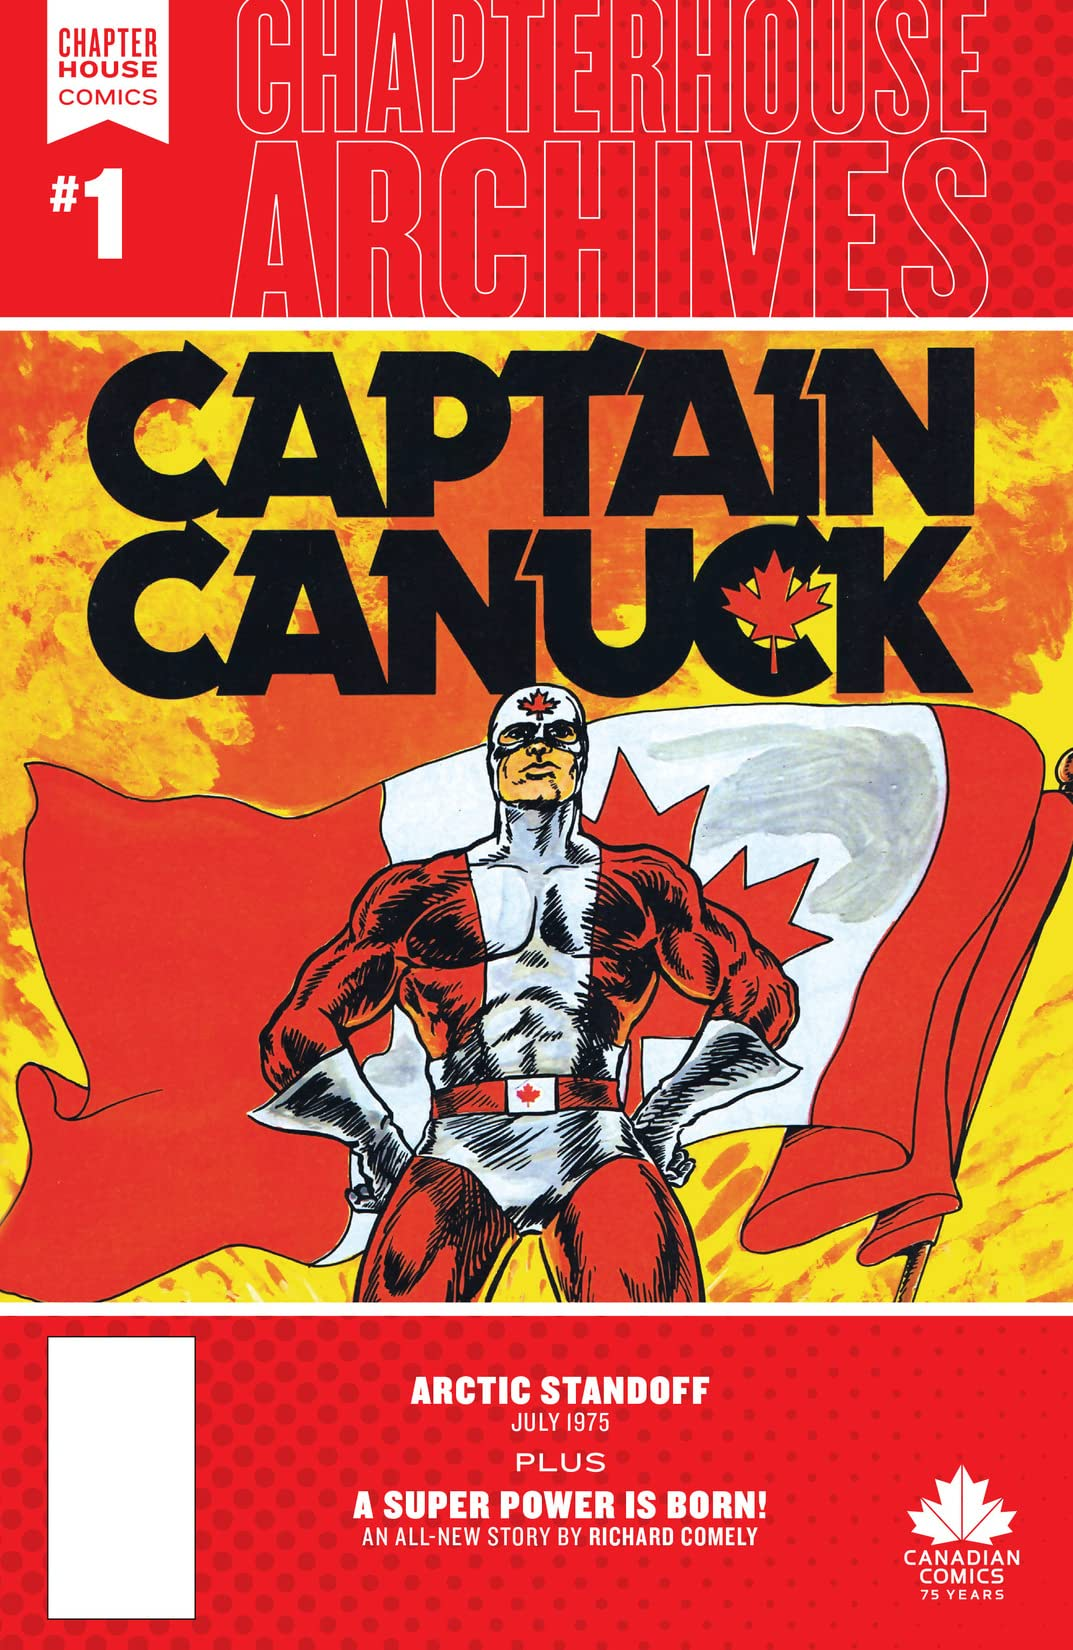 Chapterhouse Archives: Captain Canuck #1